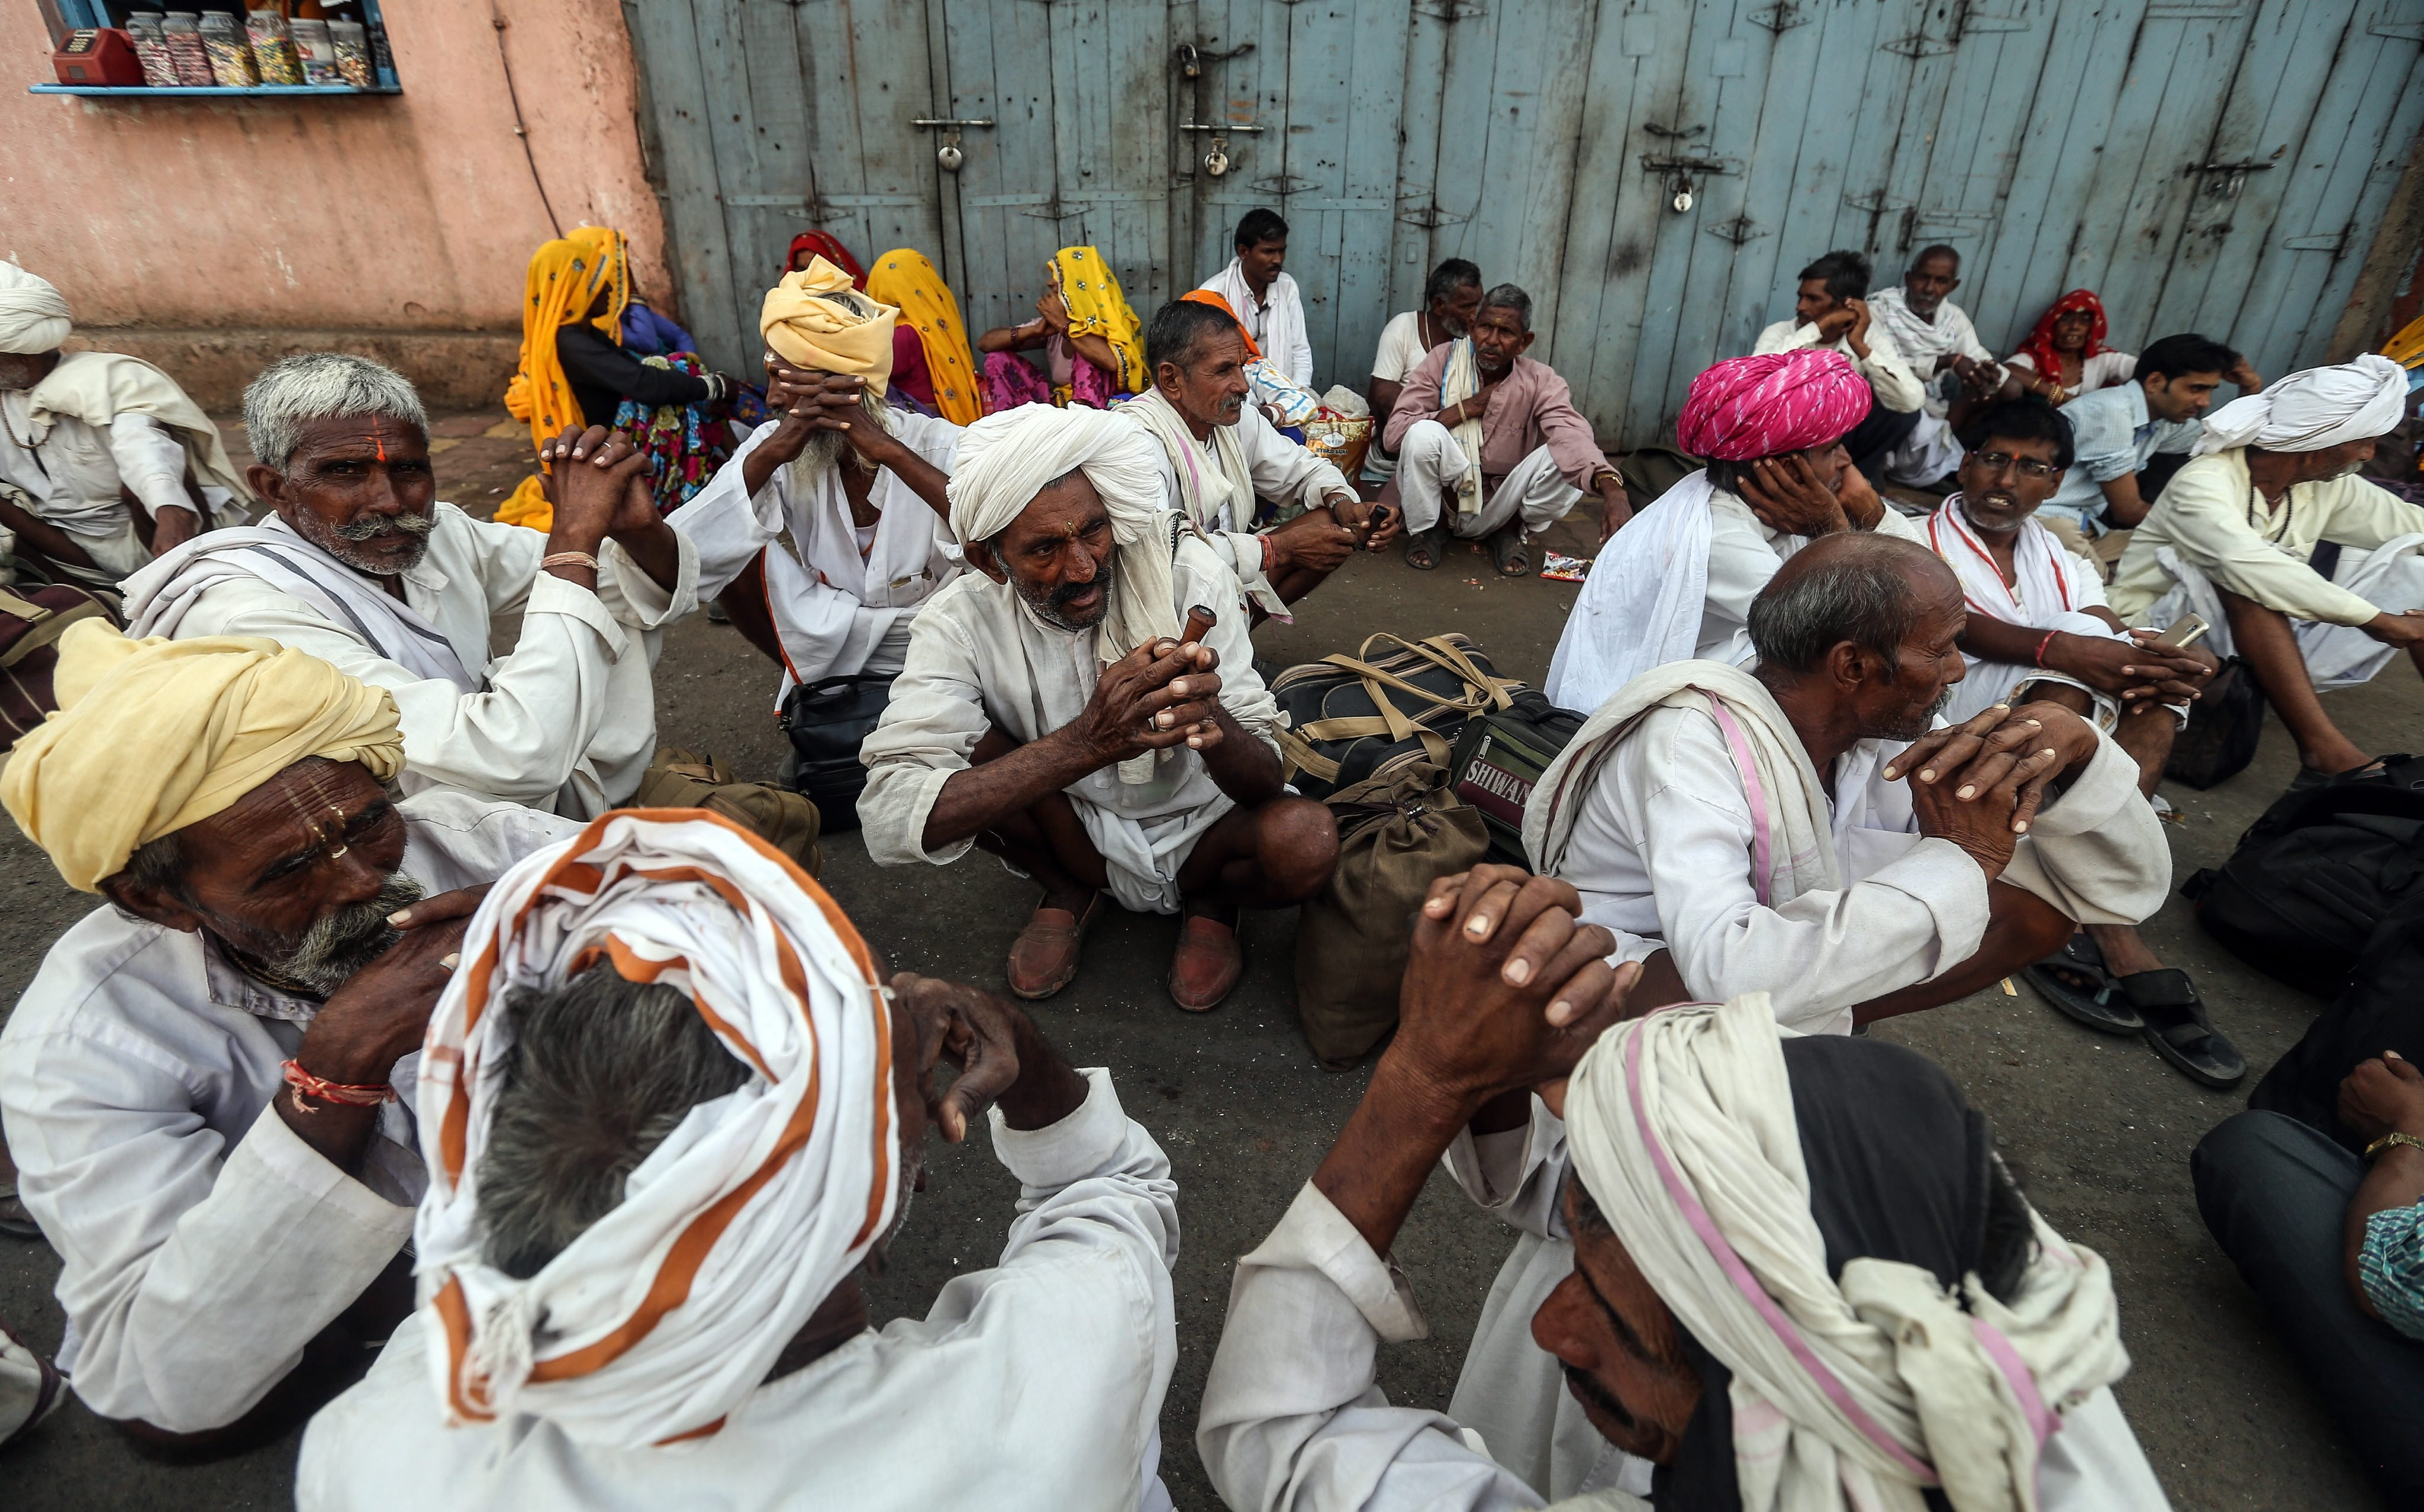 Indian devotees sit after the first Shahi Snan (Royal bathing) on the banks of Godavari river at the Kumbh Mela festival in Nasik, India, on Aug. 29, 2015.